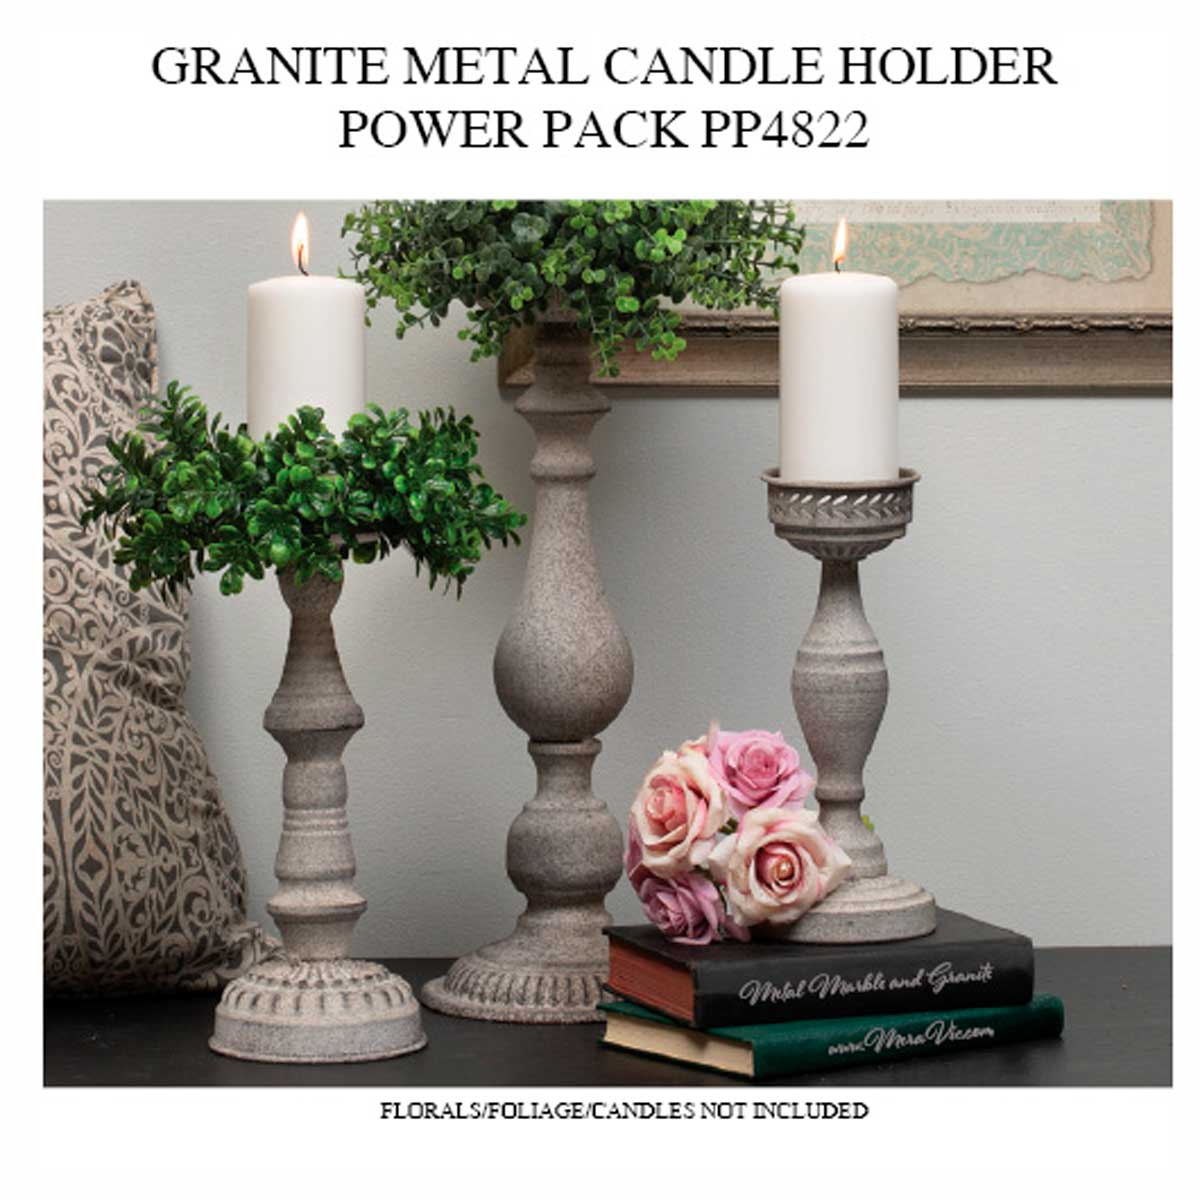 METAL GRANITE FINISH CANDLEHOLDER POWER PACK 5 UNITS